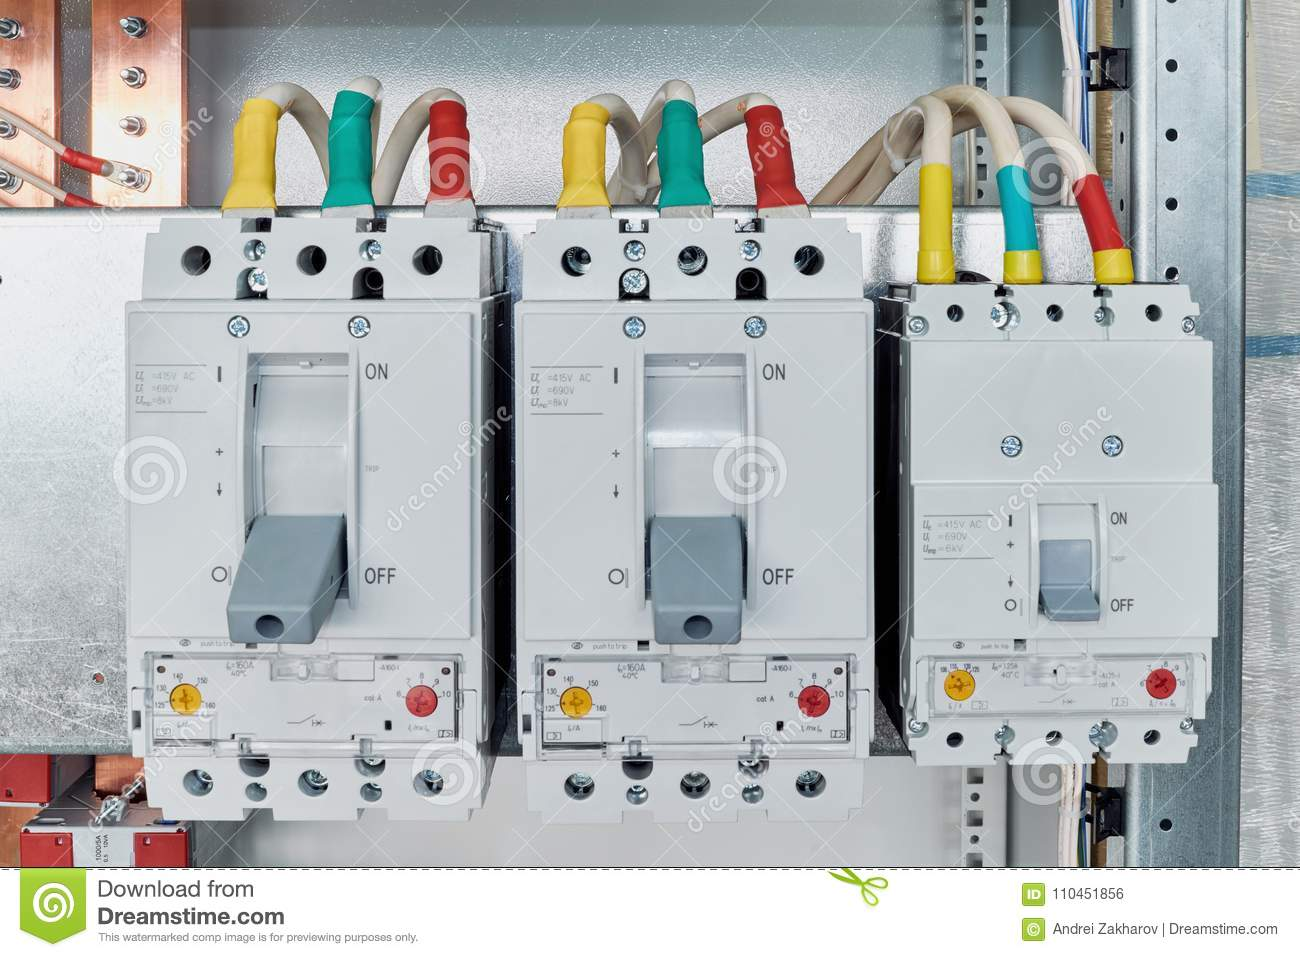 power circuit breakers are arranged in a row in an electric cabinet rh dreamstime com